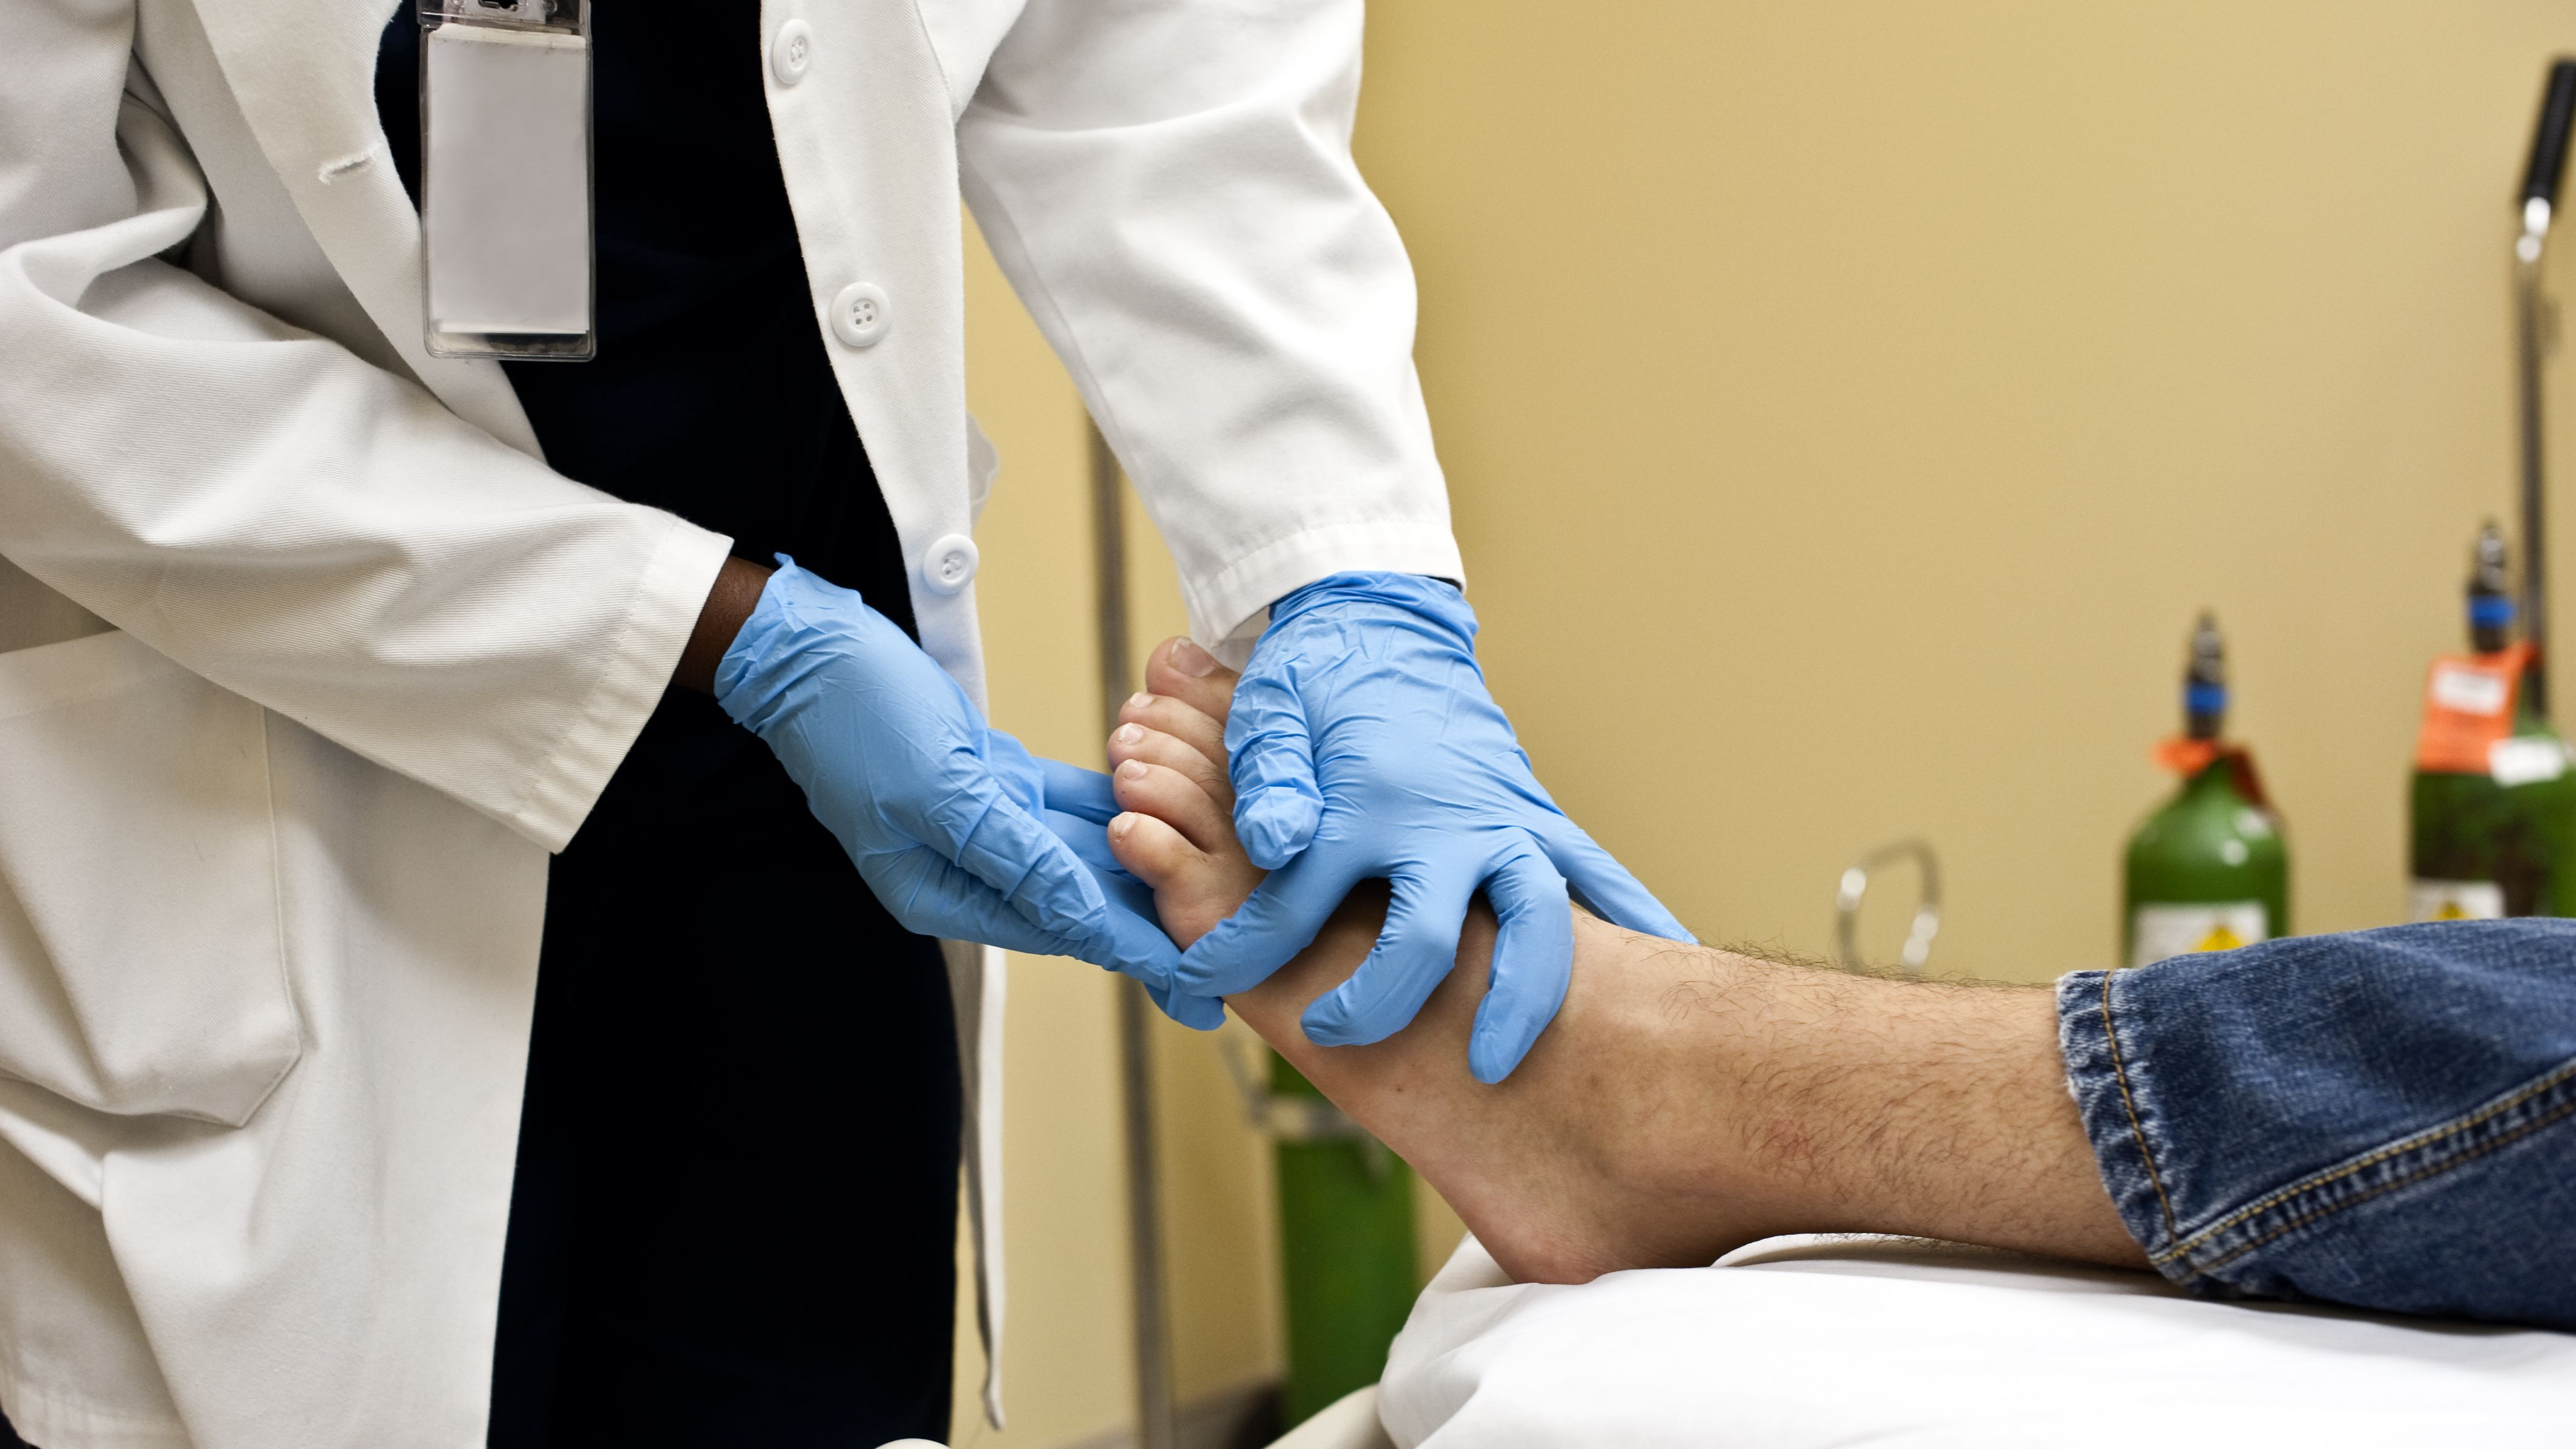 Podiatrist: Expertise, Specialties, and Training